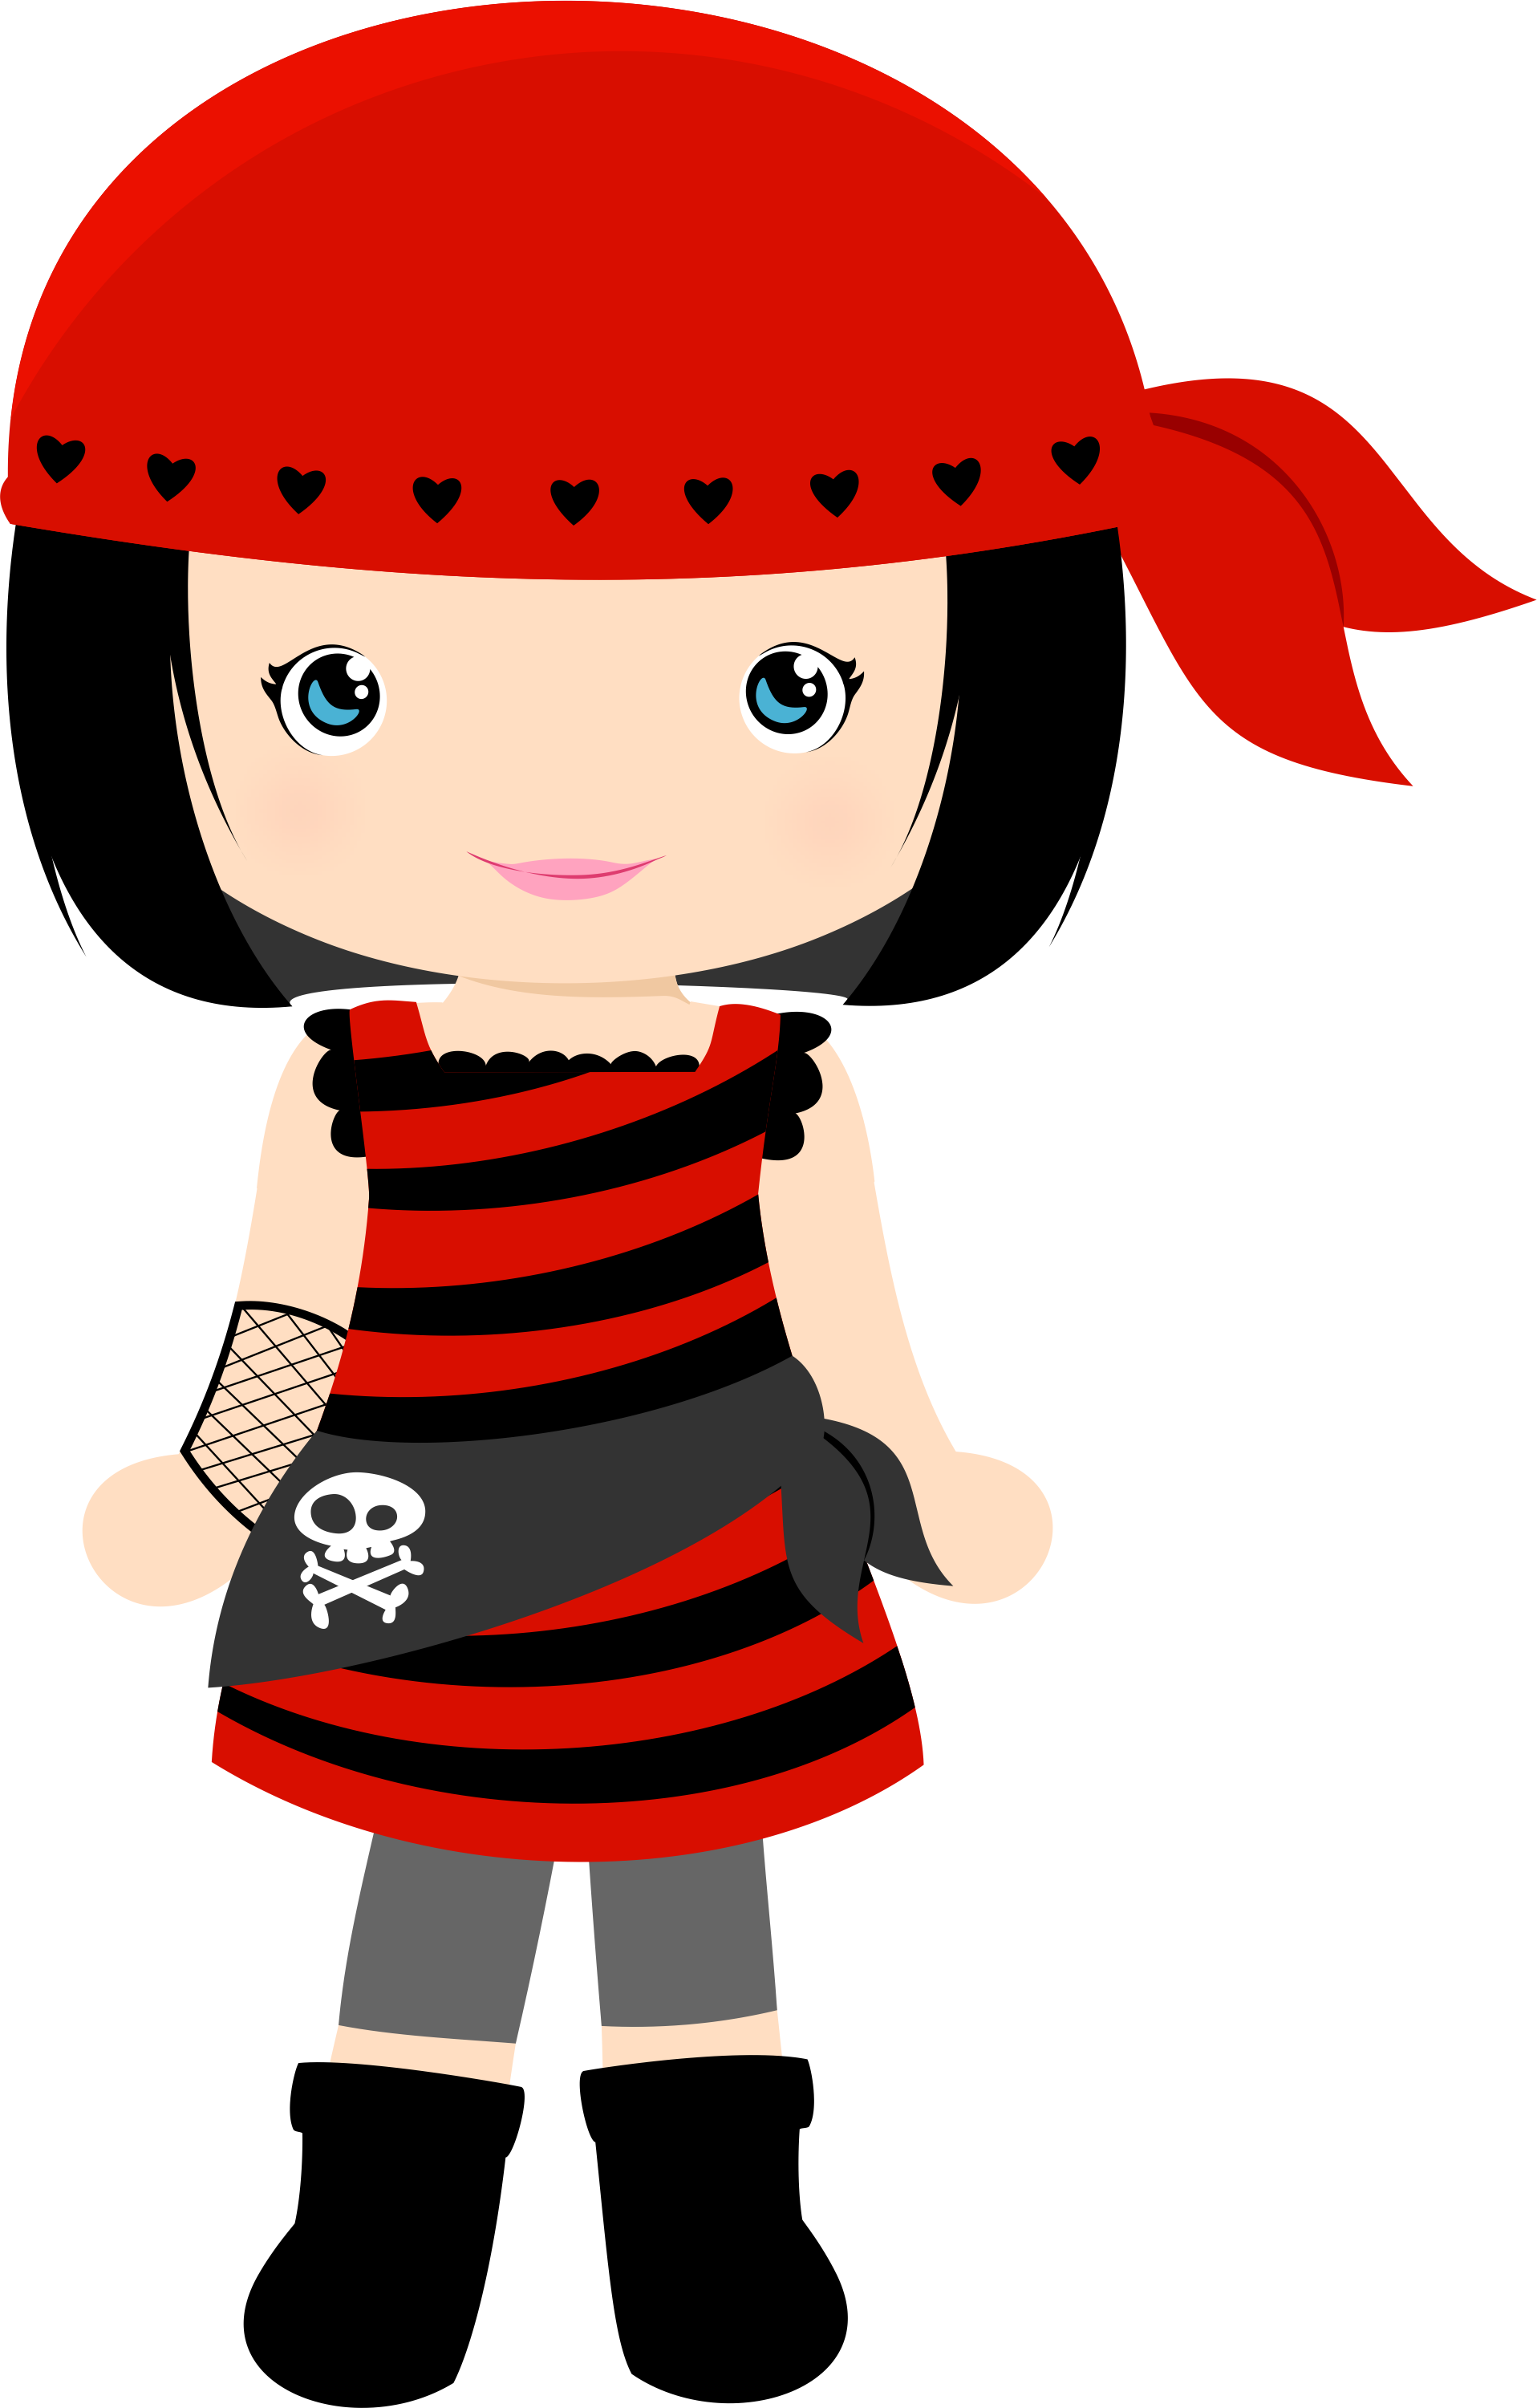 Grafos girlscostumes girlcostume png. Nest clipart kid